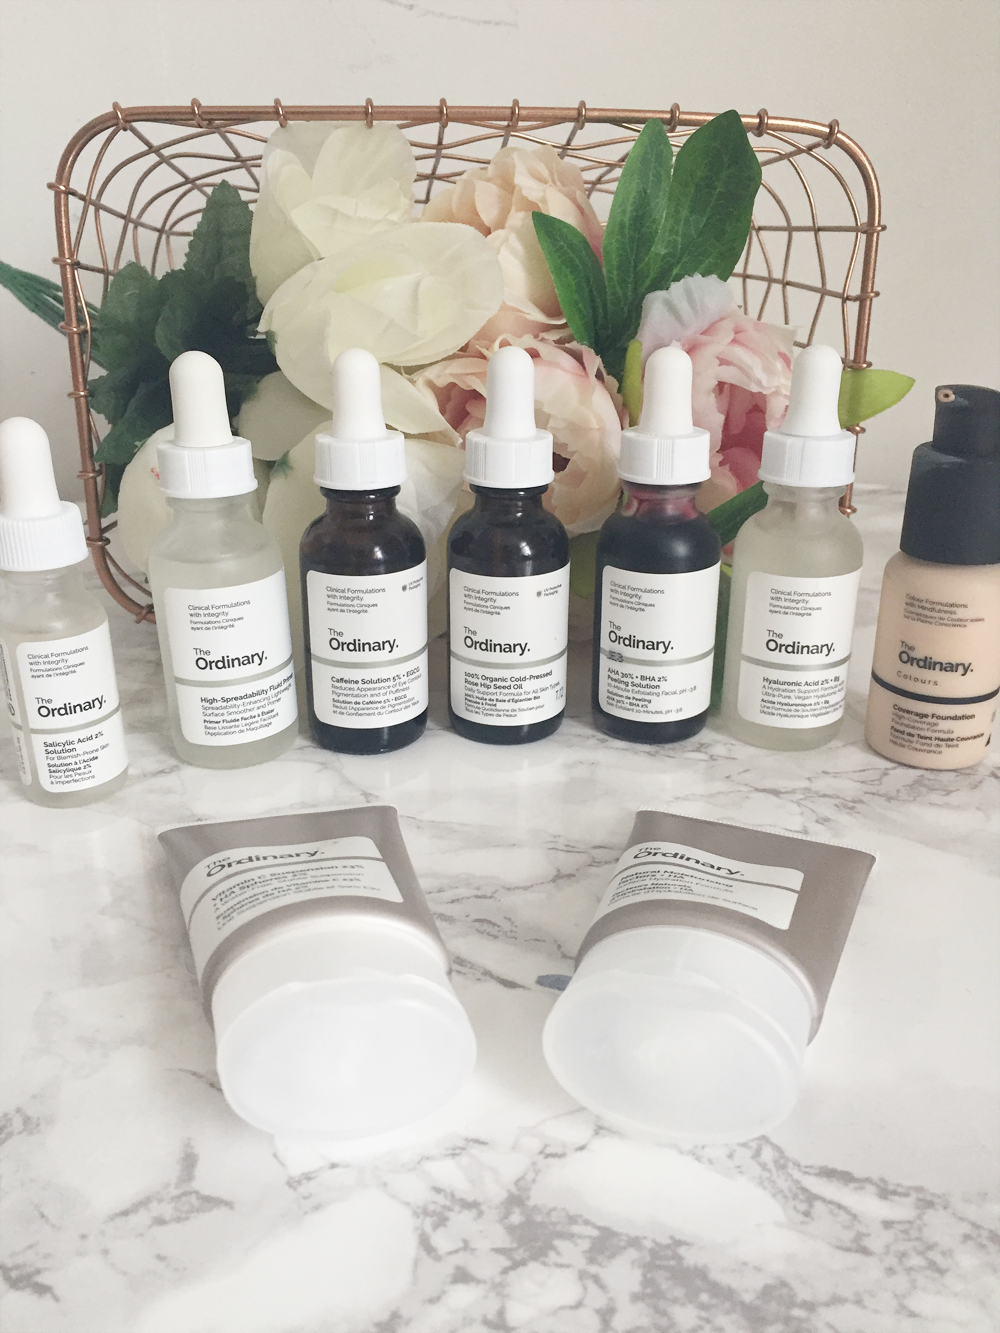 The Ordinary | First Impressions.